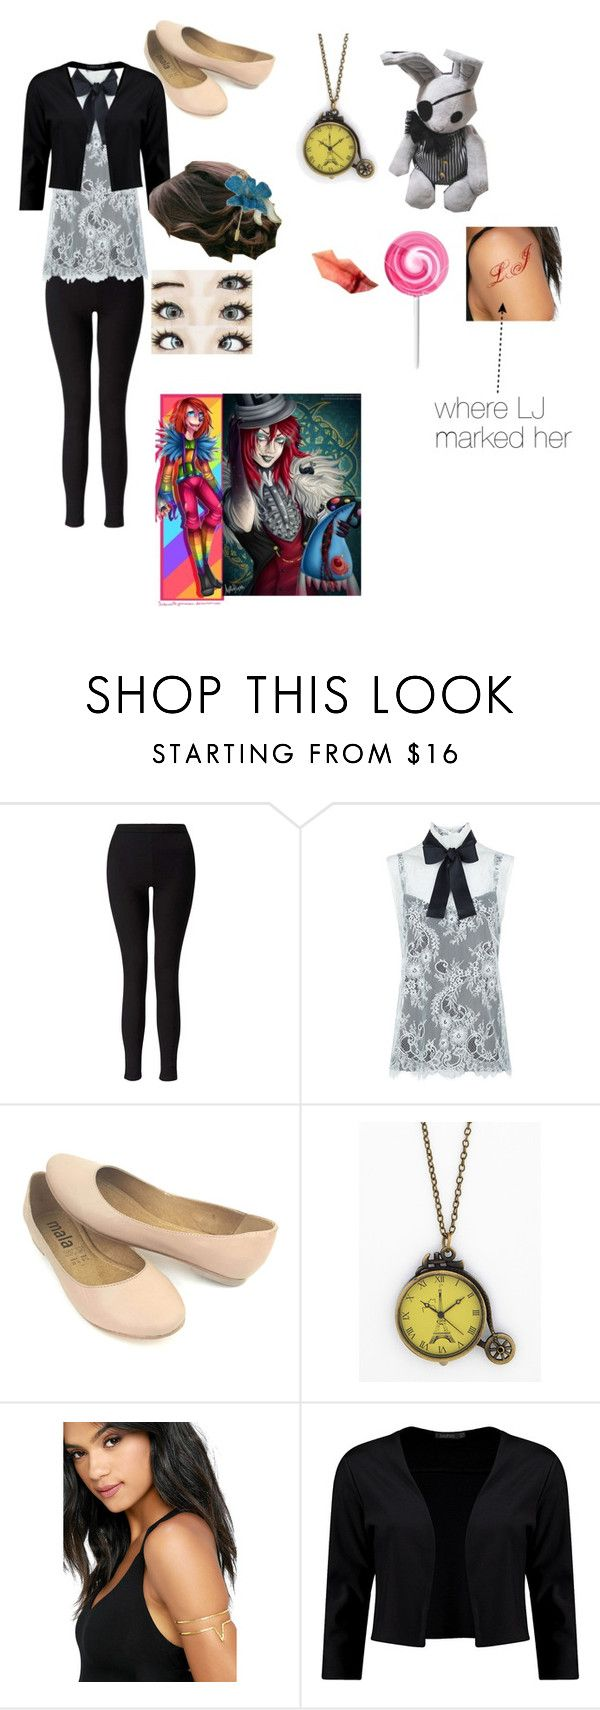 """""""Joel Sophie Grossman outfit 2"""" by laughing-jack5 ❤ liked on Polyvore featuring Miss Selfridge, Philosophy di Lorenzo Serafini, Ciel, Natalie B, Boohoo and NOVICA"""